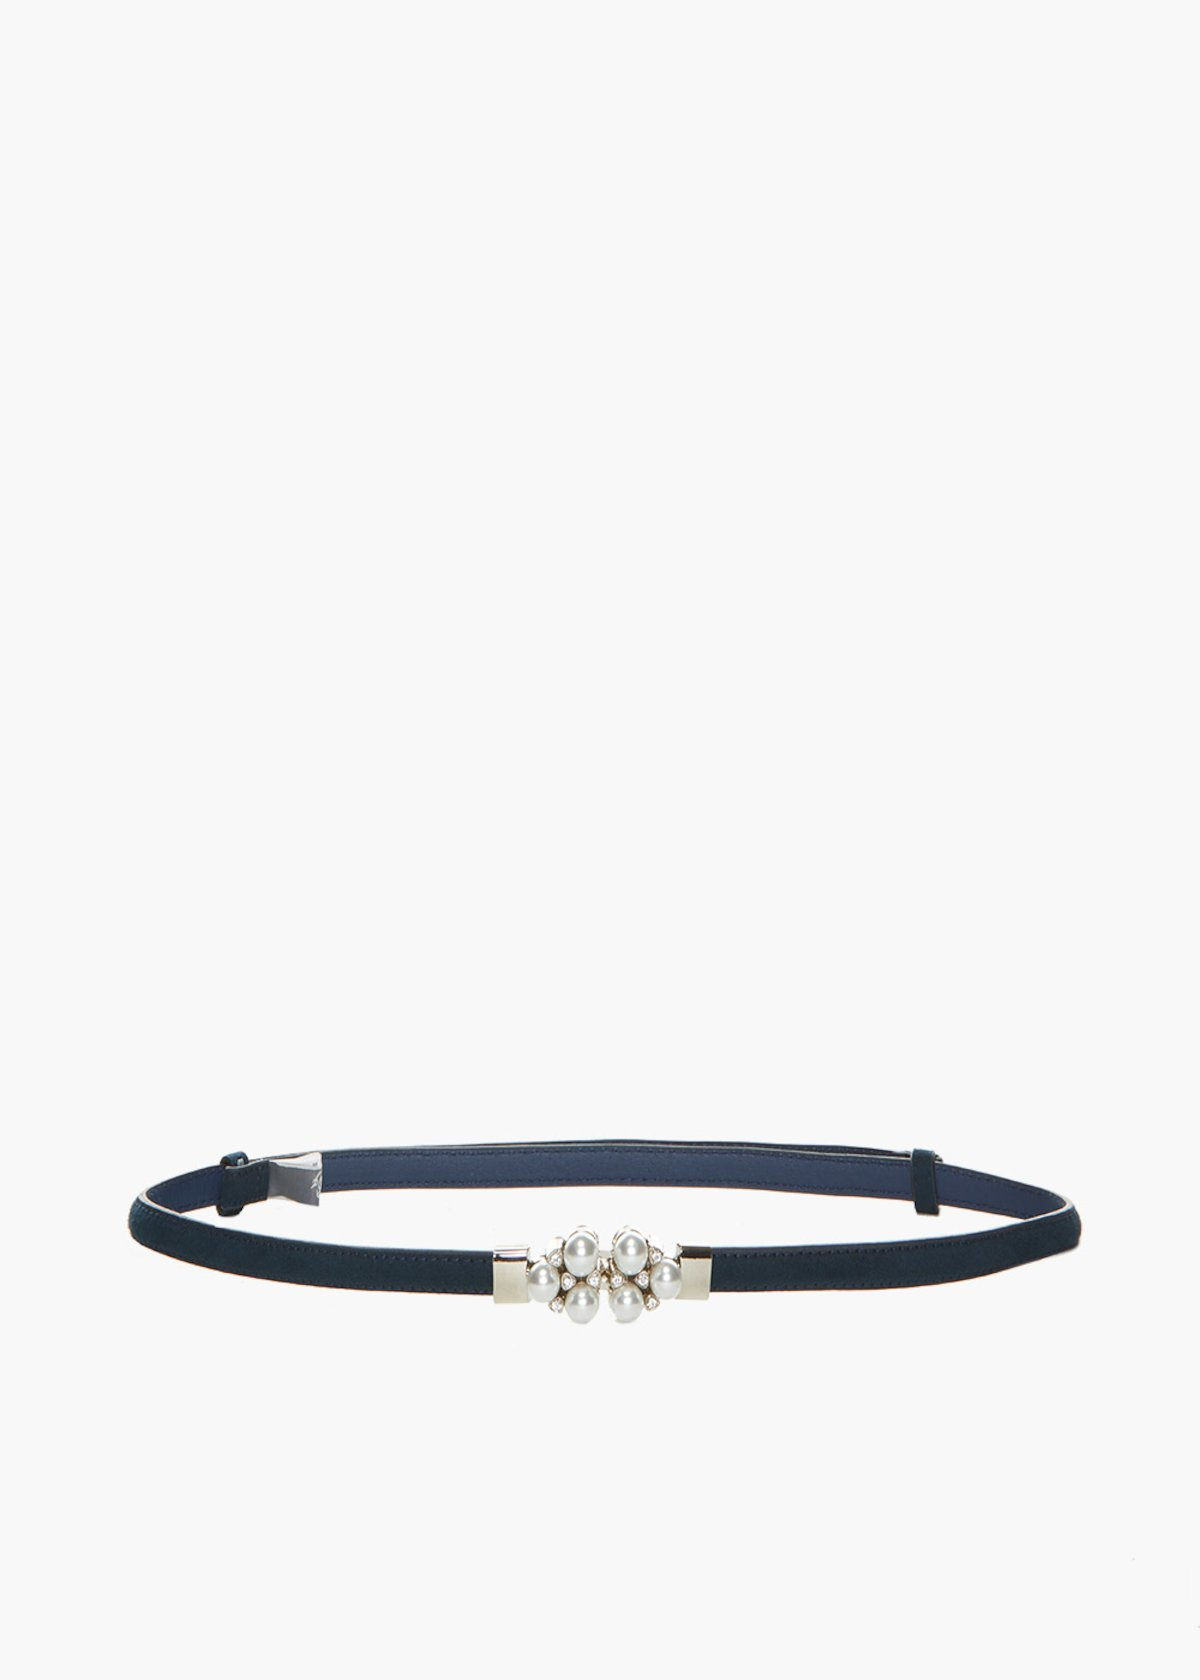 miglior servizio 9149b 39ea3 Faux suede Craia belt with pearls and crystal detail